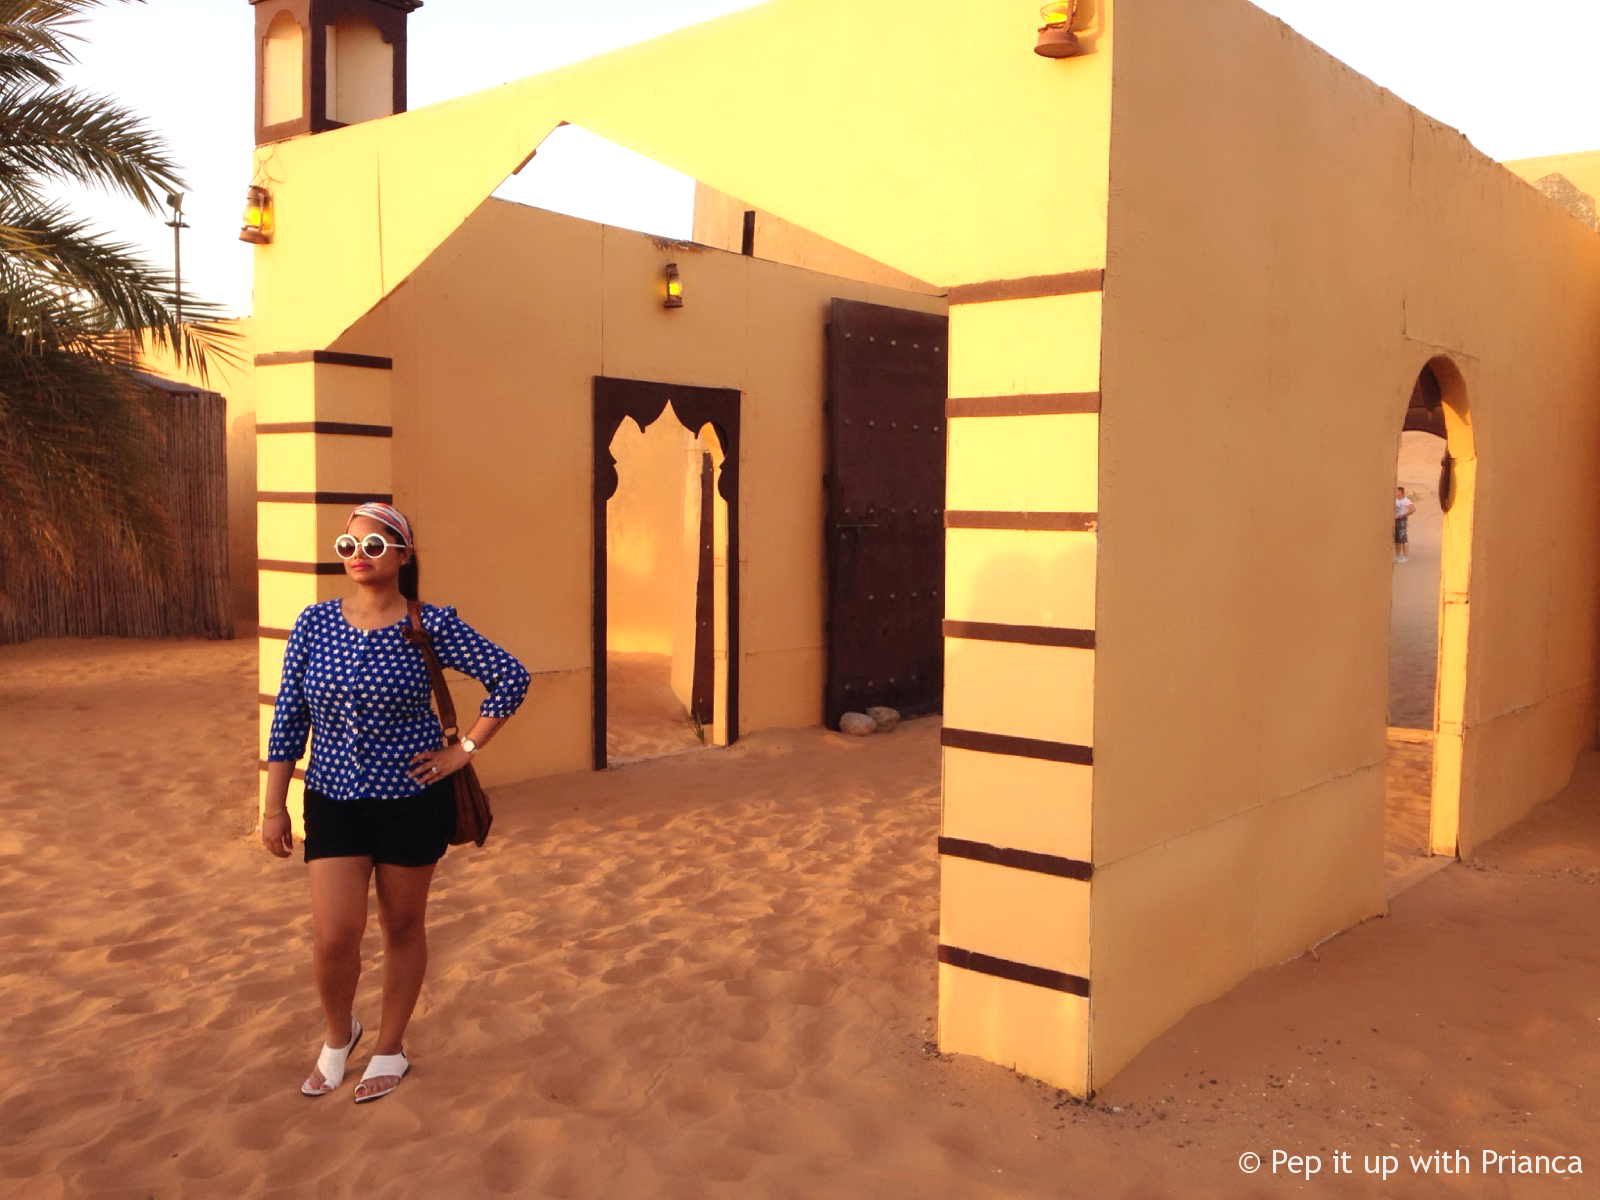 Ready for Camel ride after dune bashing